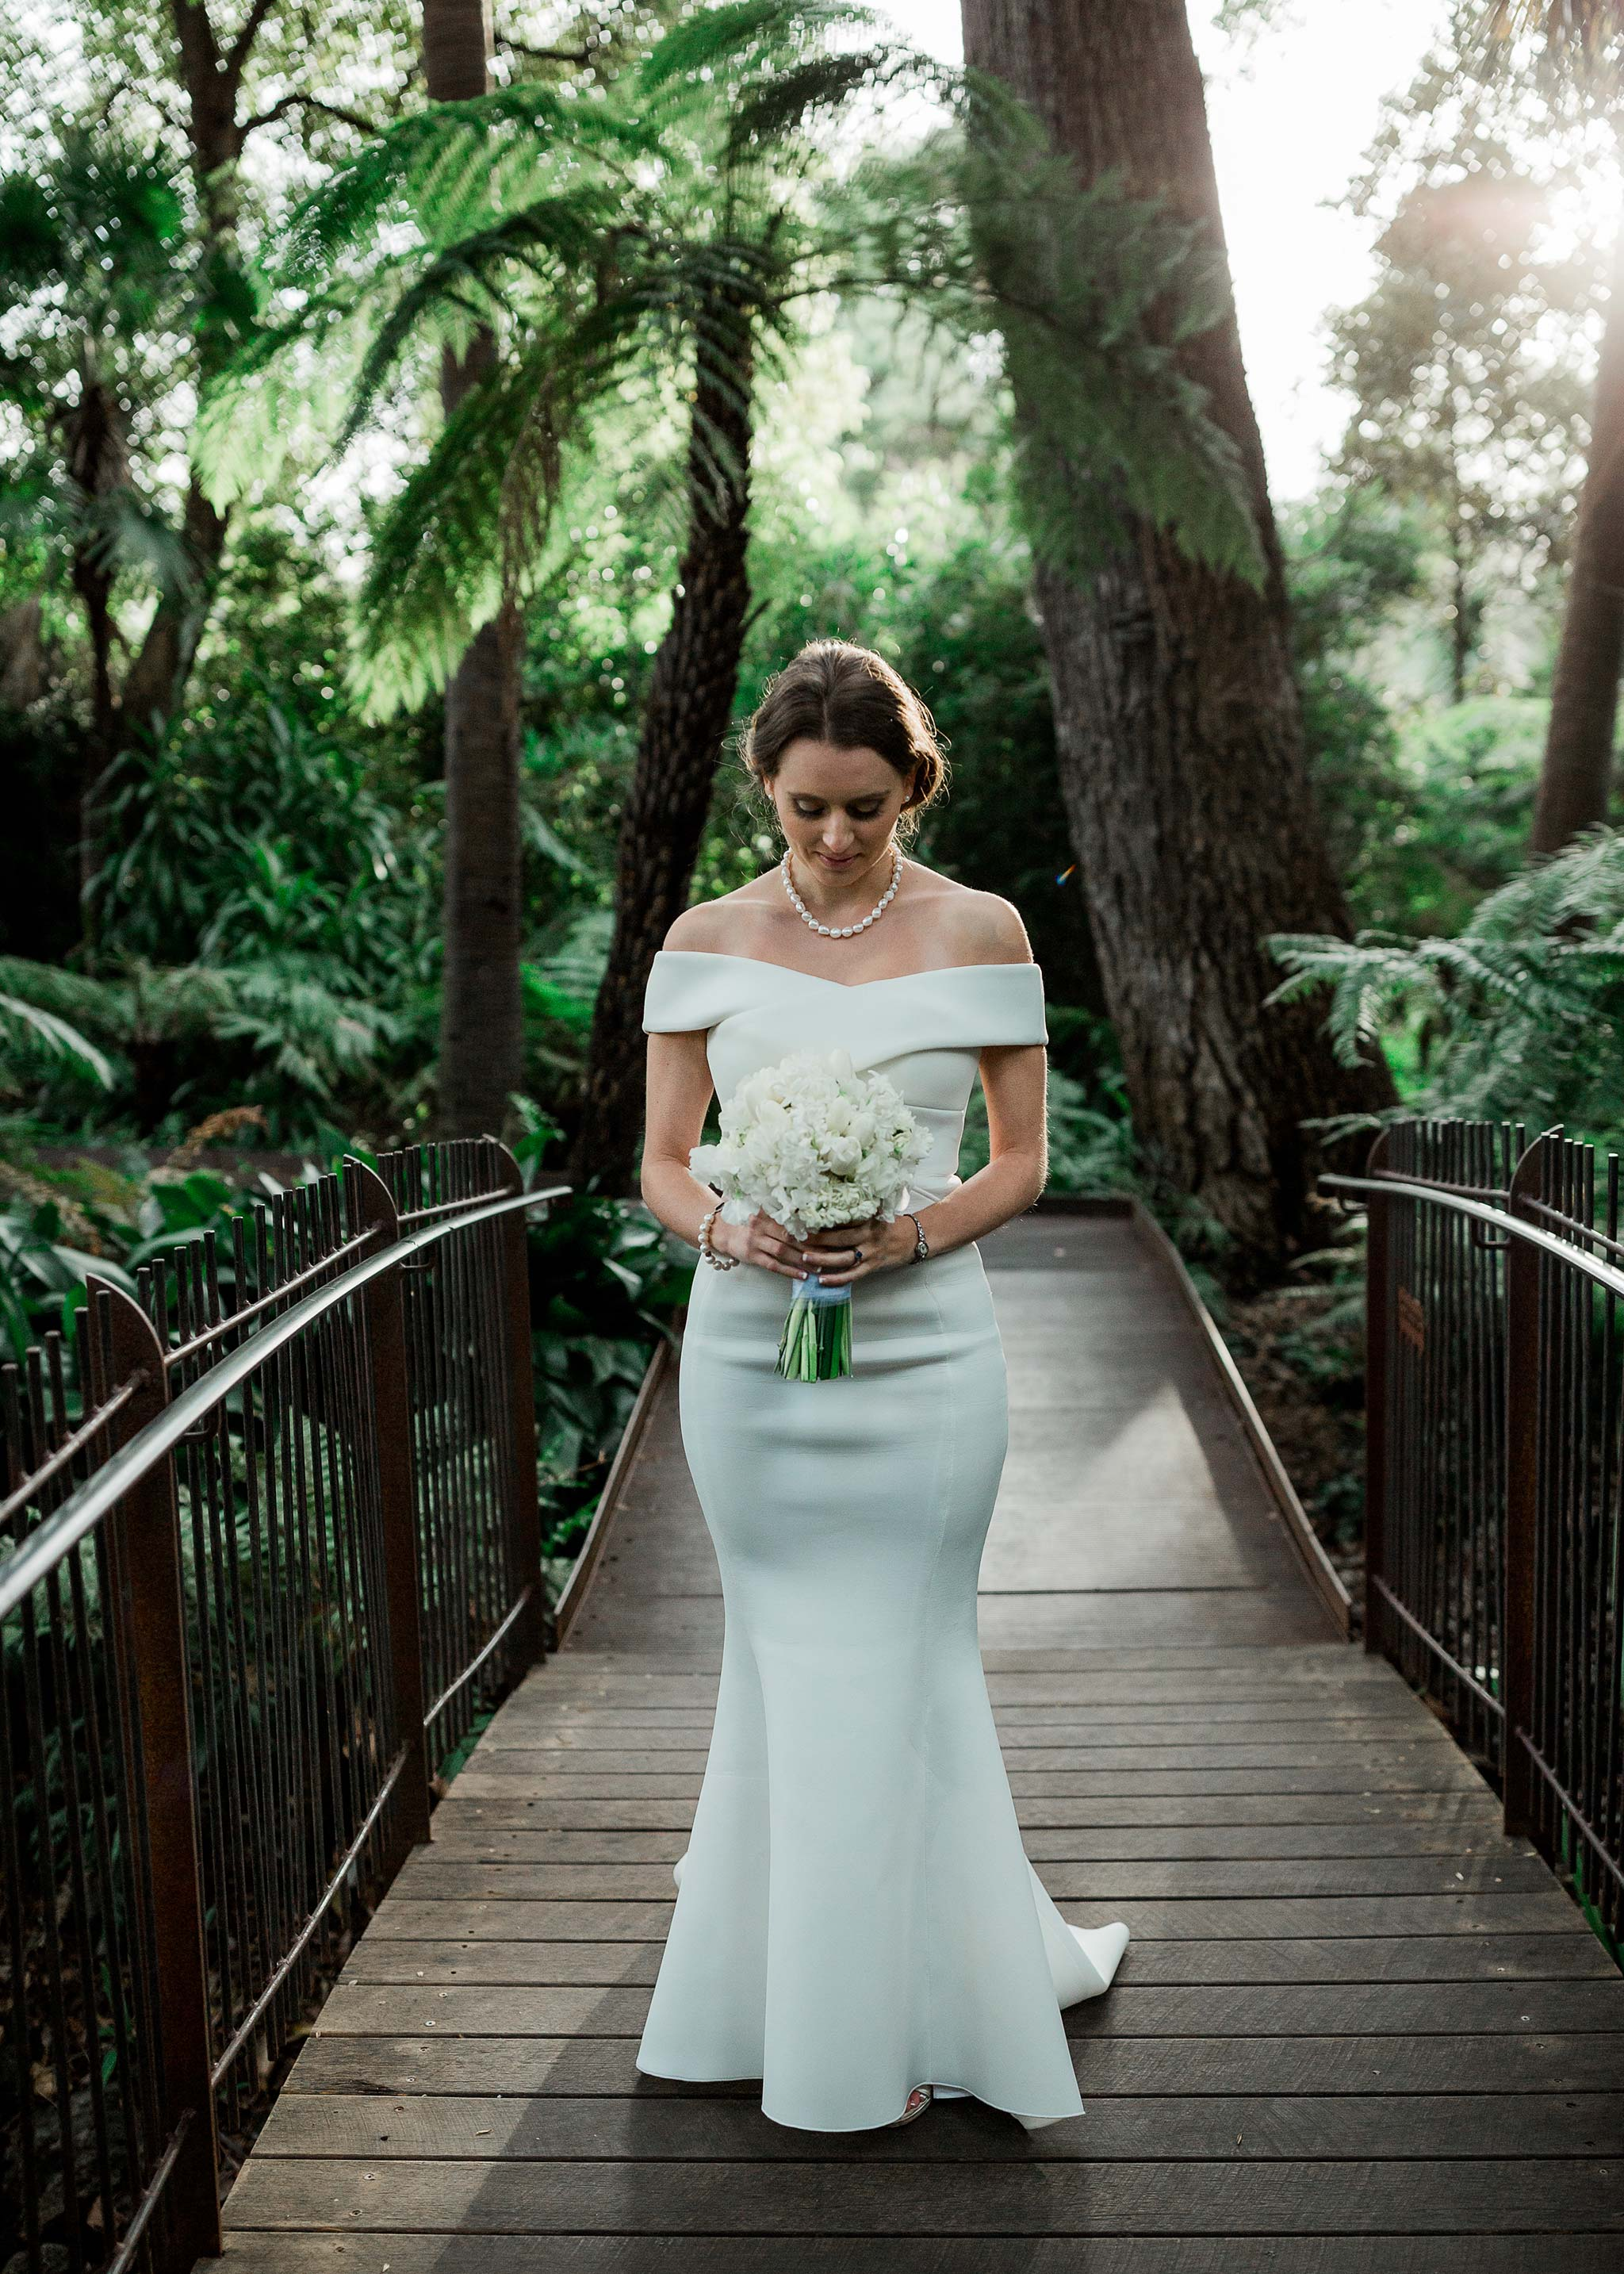 melbourne-royal-botanical-garden-bride-groom-portrait